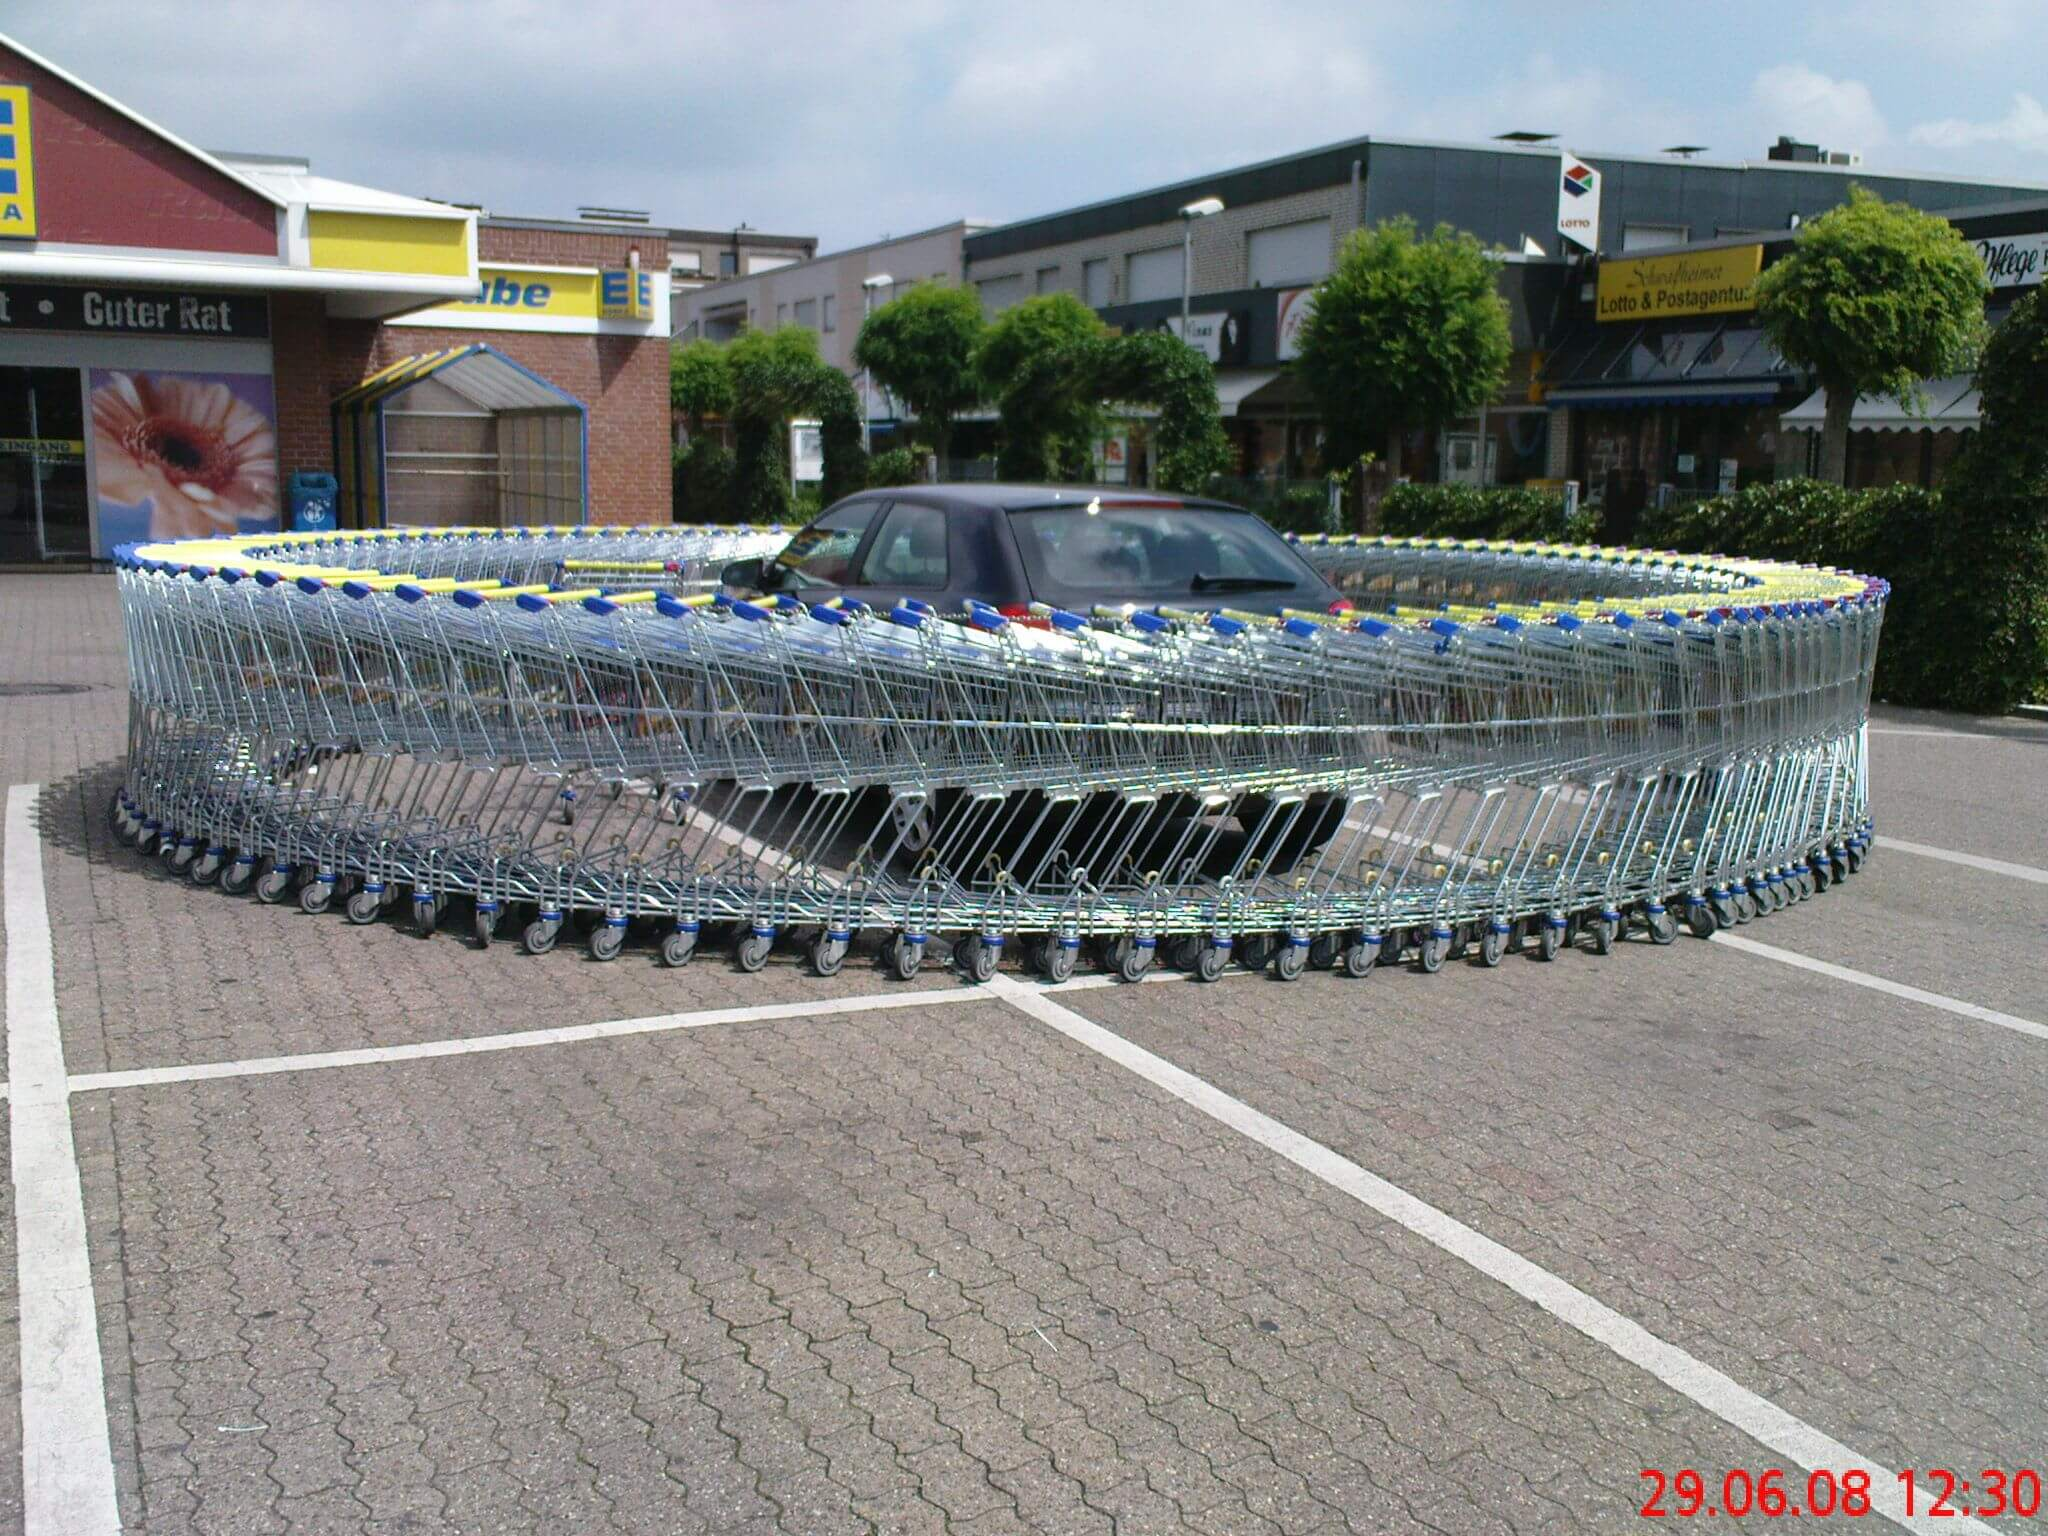 Be wary of parking like a jerk, lest the circle of carts gets you next.